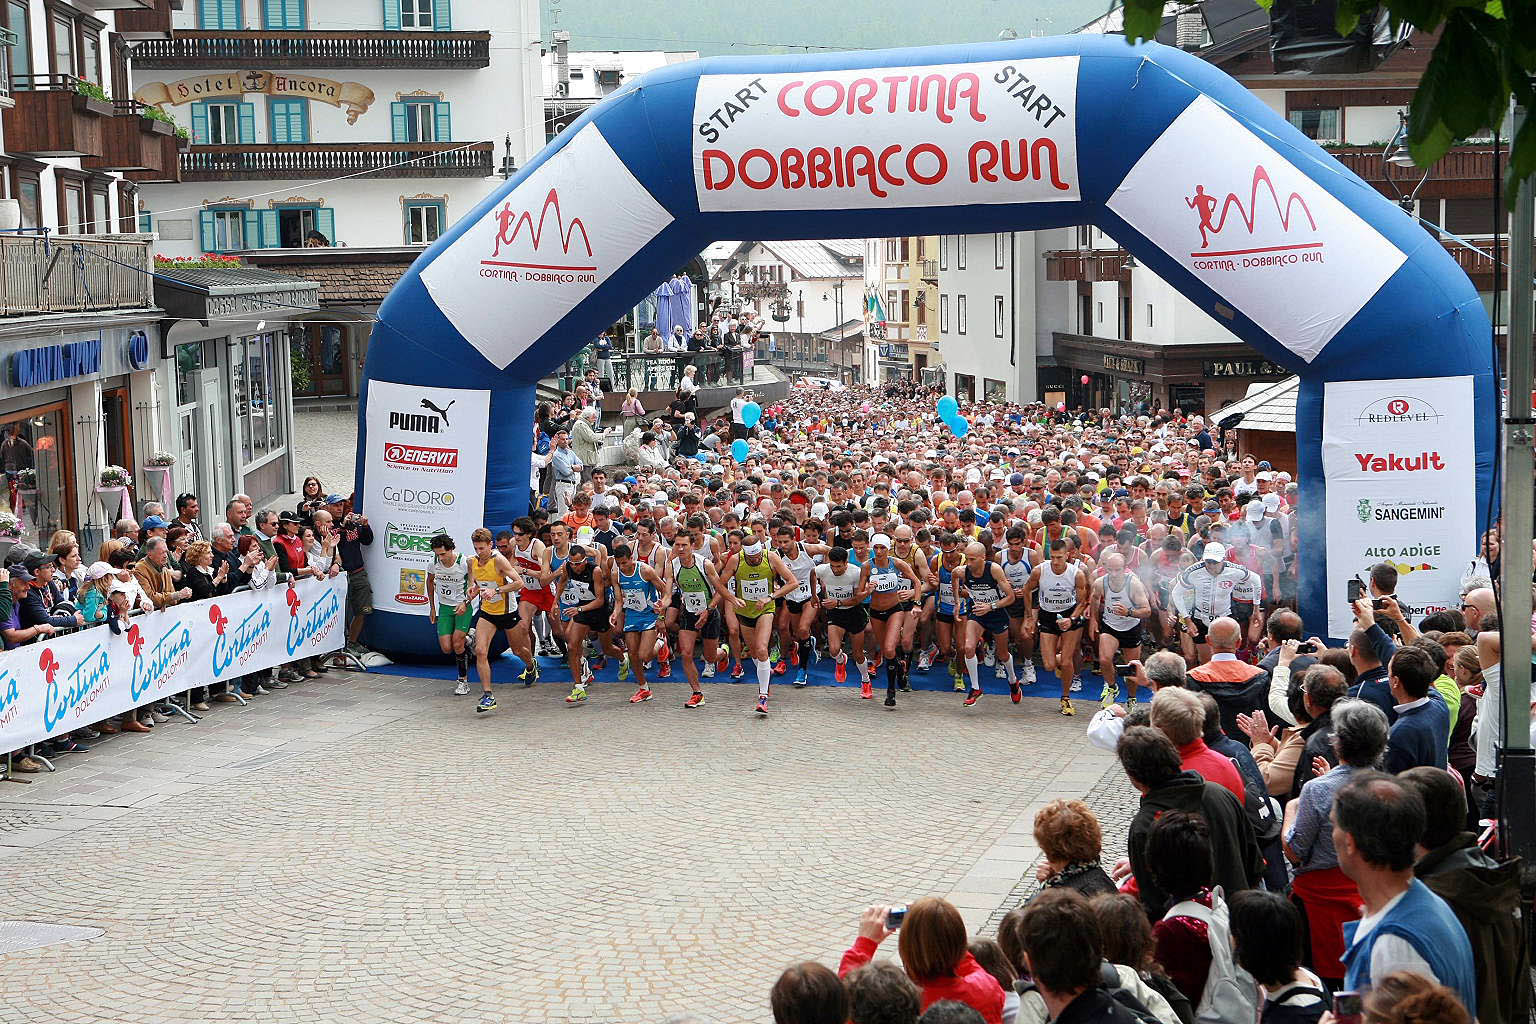 Cortina Dobbiaco Run 2012, le classifiche